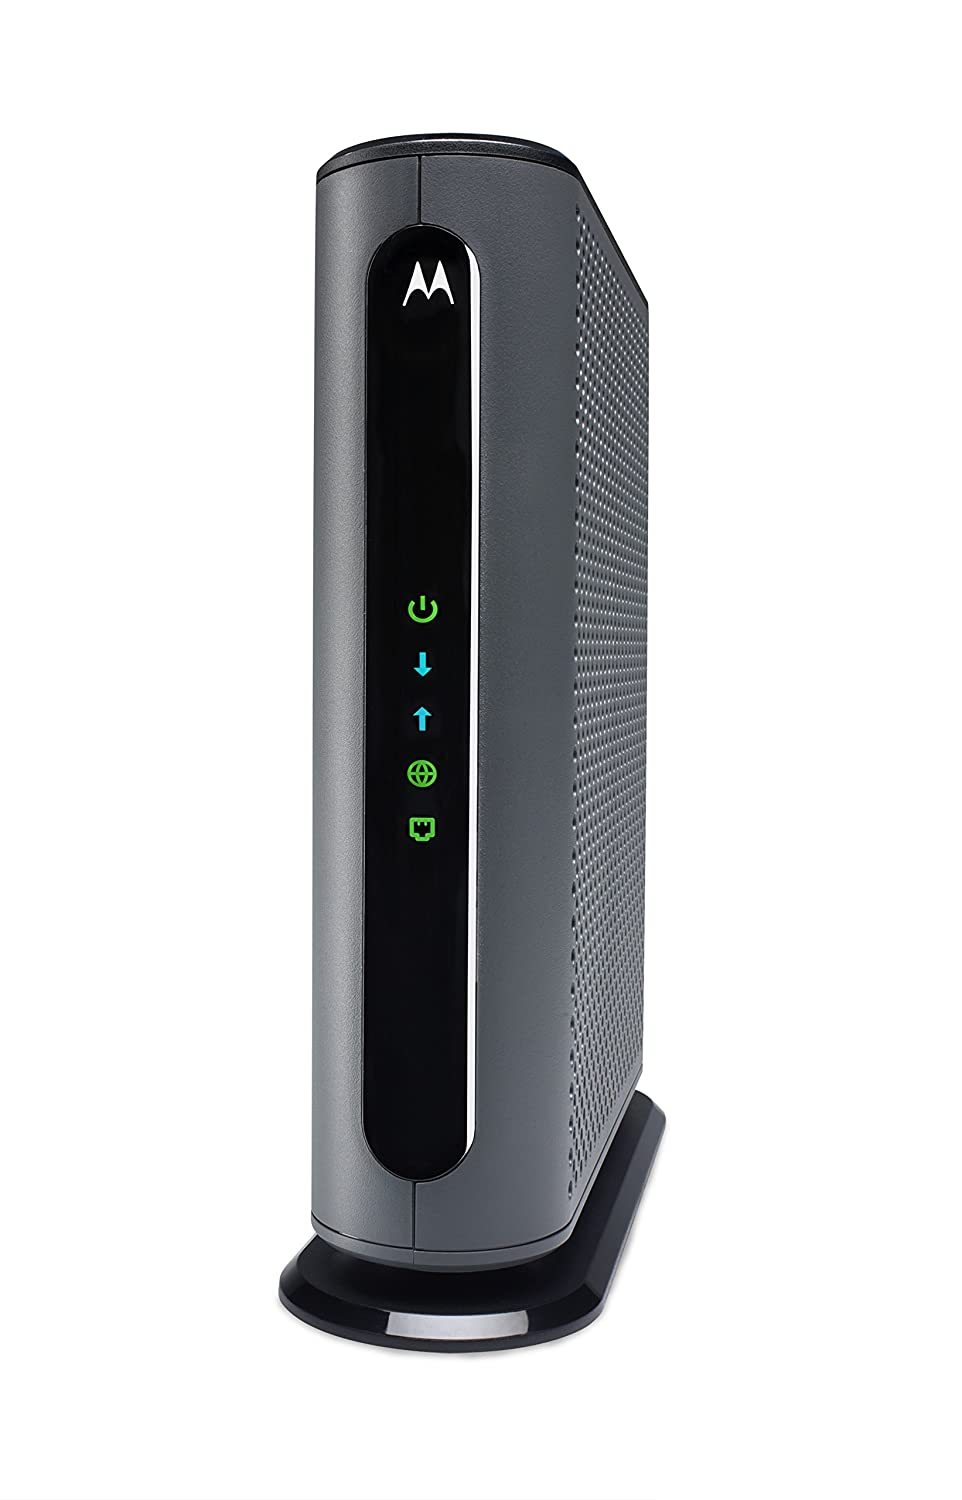 Motorola Ultra Fast DOCSIS 3.1 Cable Modem, Model MB8600, plus 32x8 3.0,... | eBay